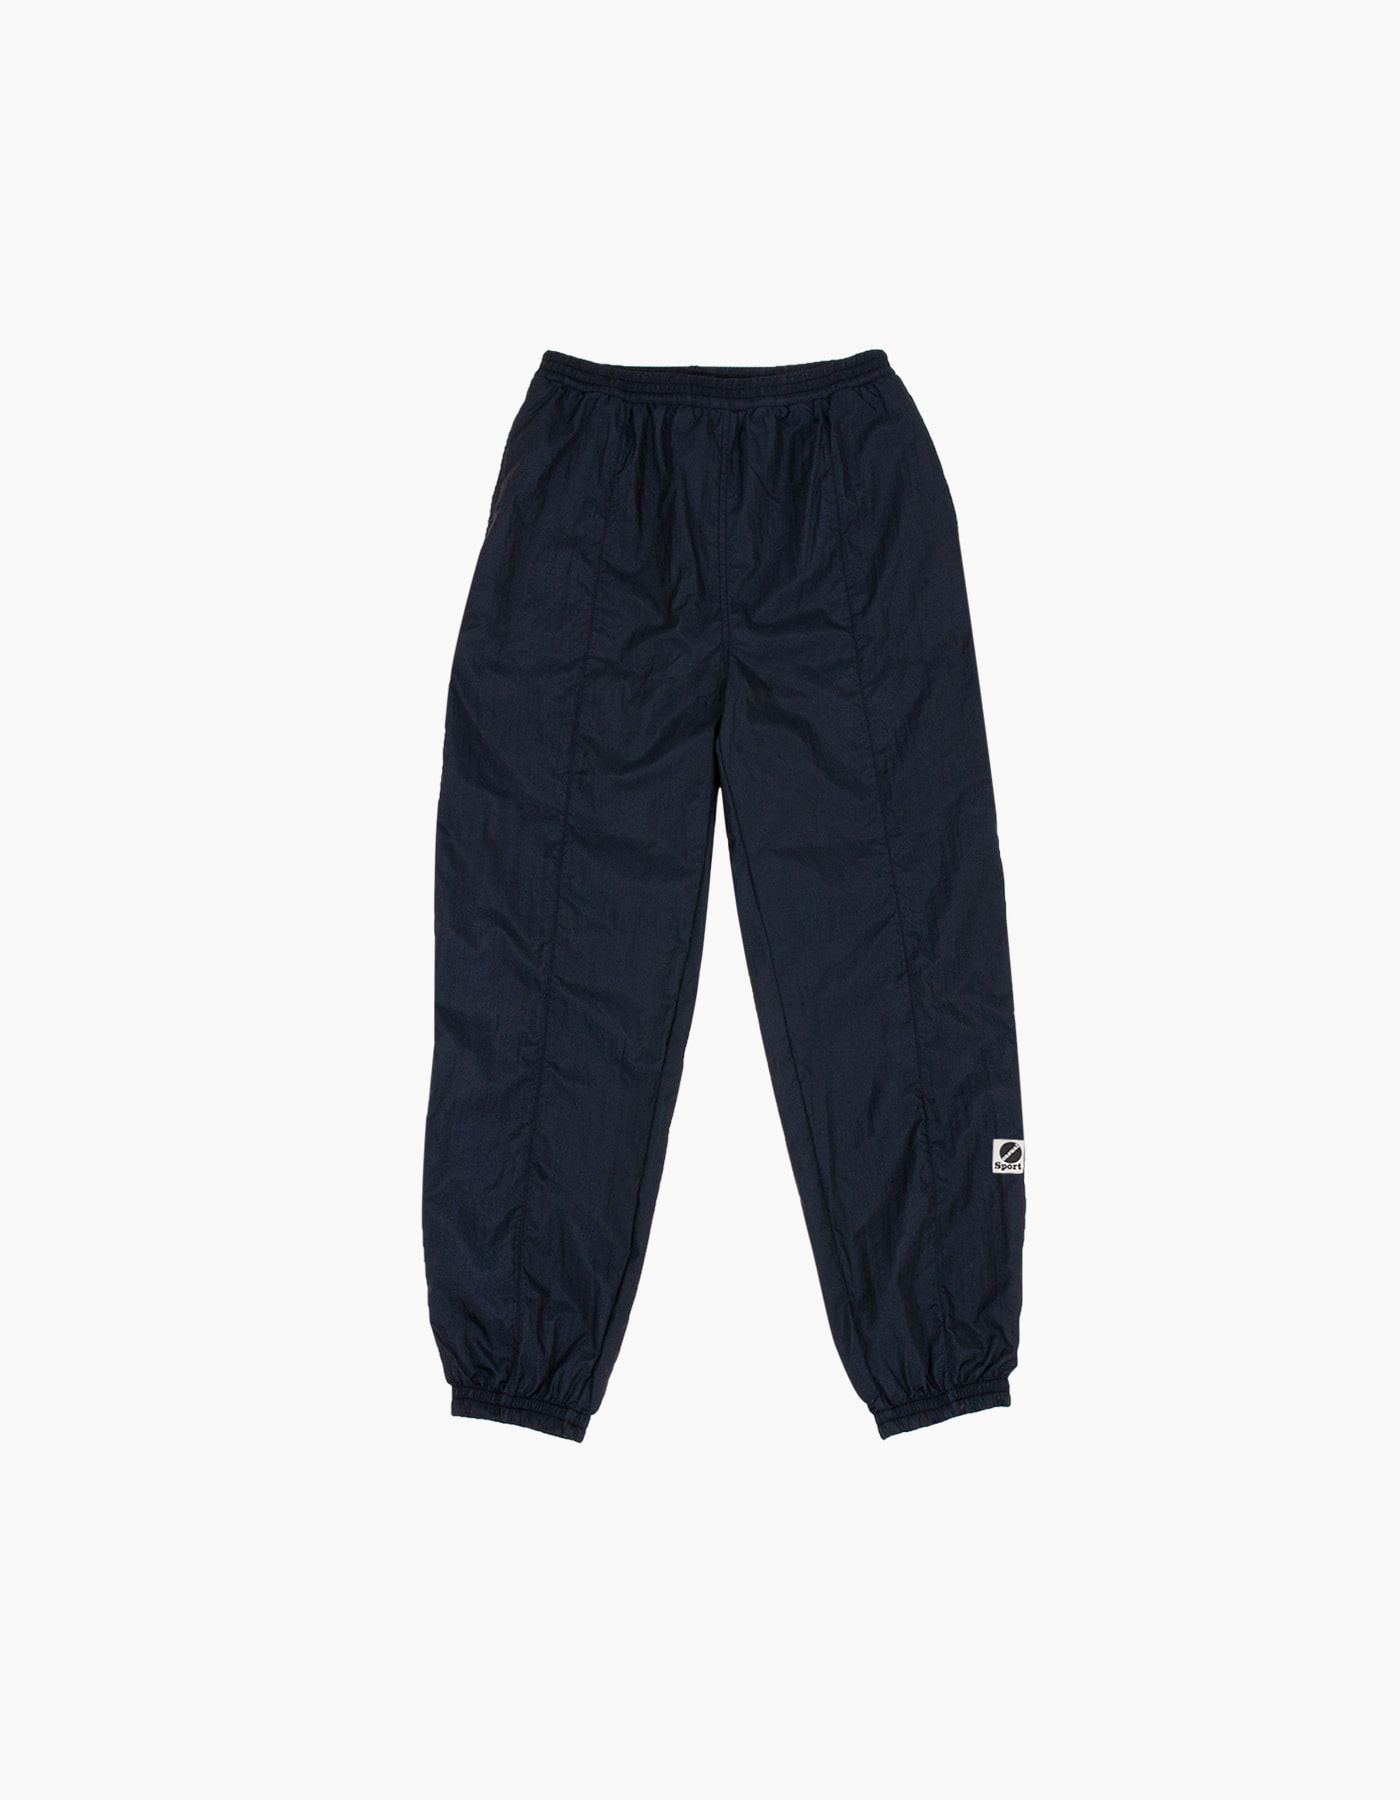 NYLON DIAMOND WASHER PANTS / NAVY